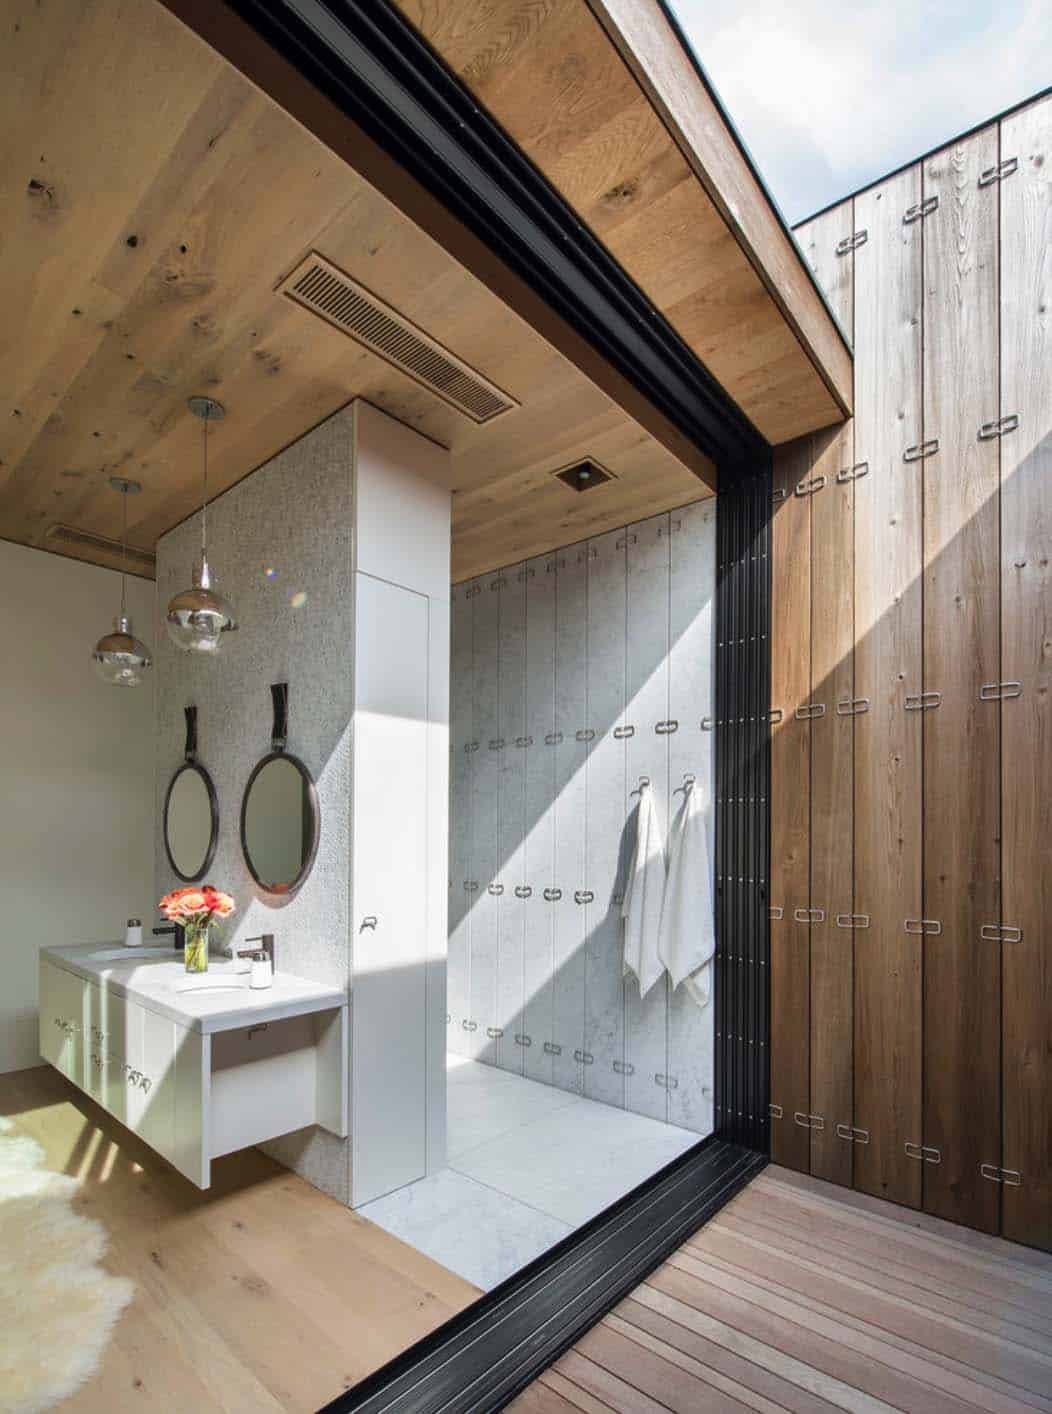 Architecture-Modern-Home-Bates Masi Architects-13-1 Kindesign